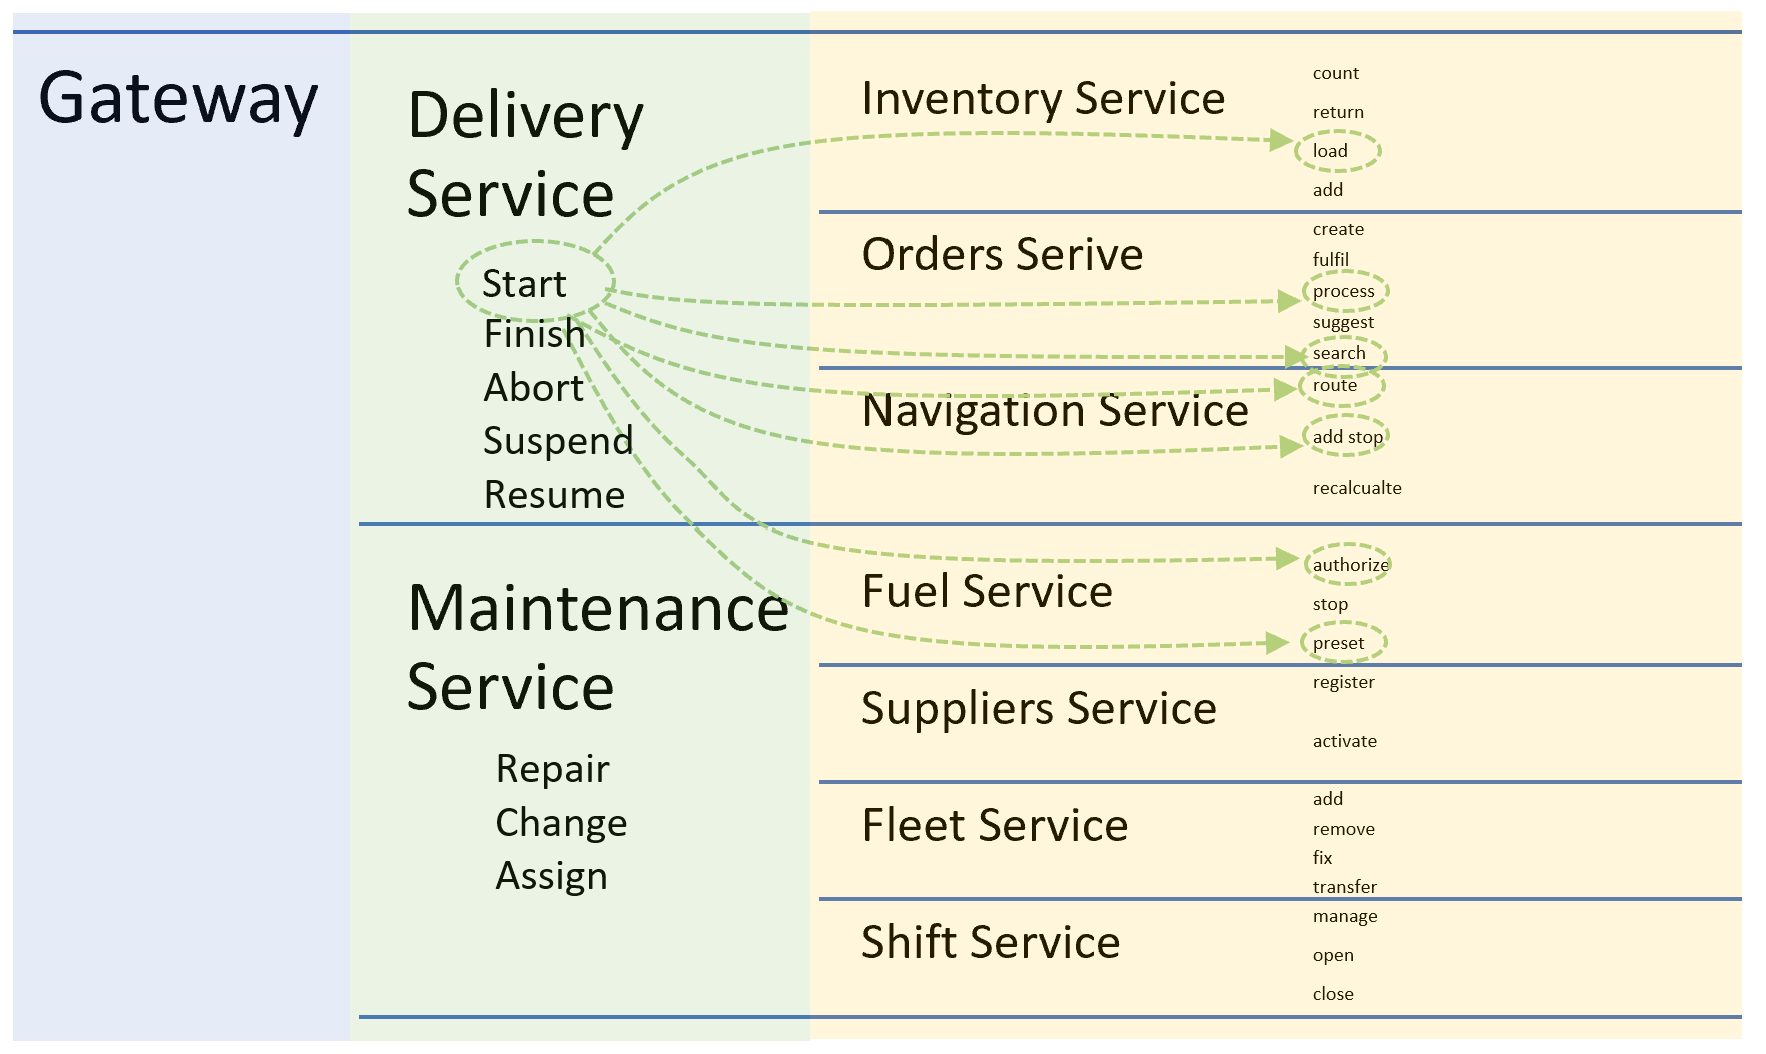 Delivery service orchestrates domain services in business flow